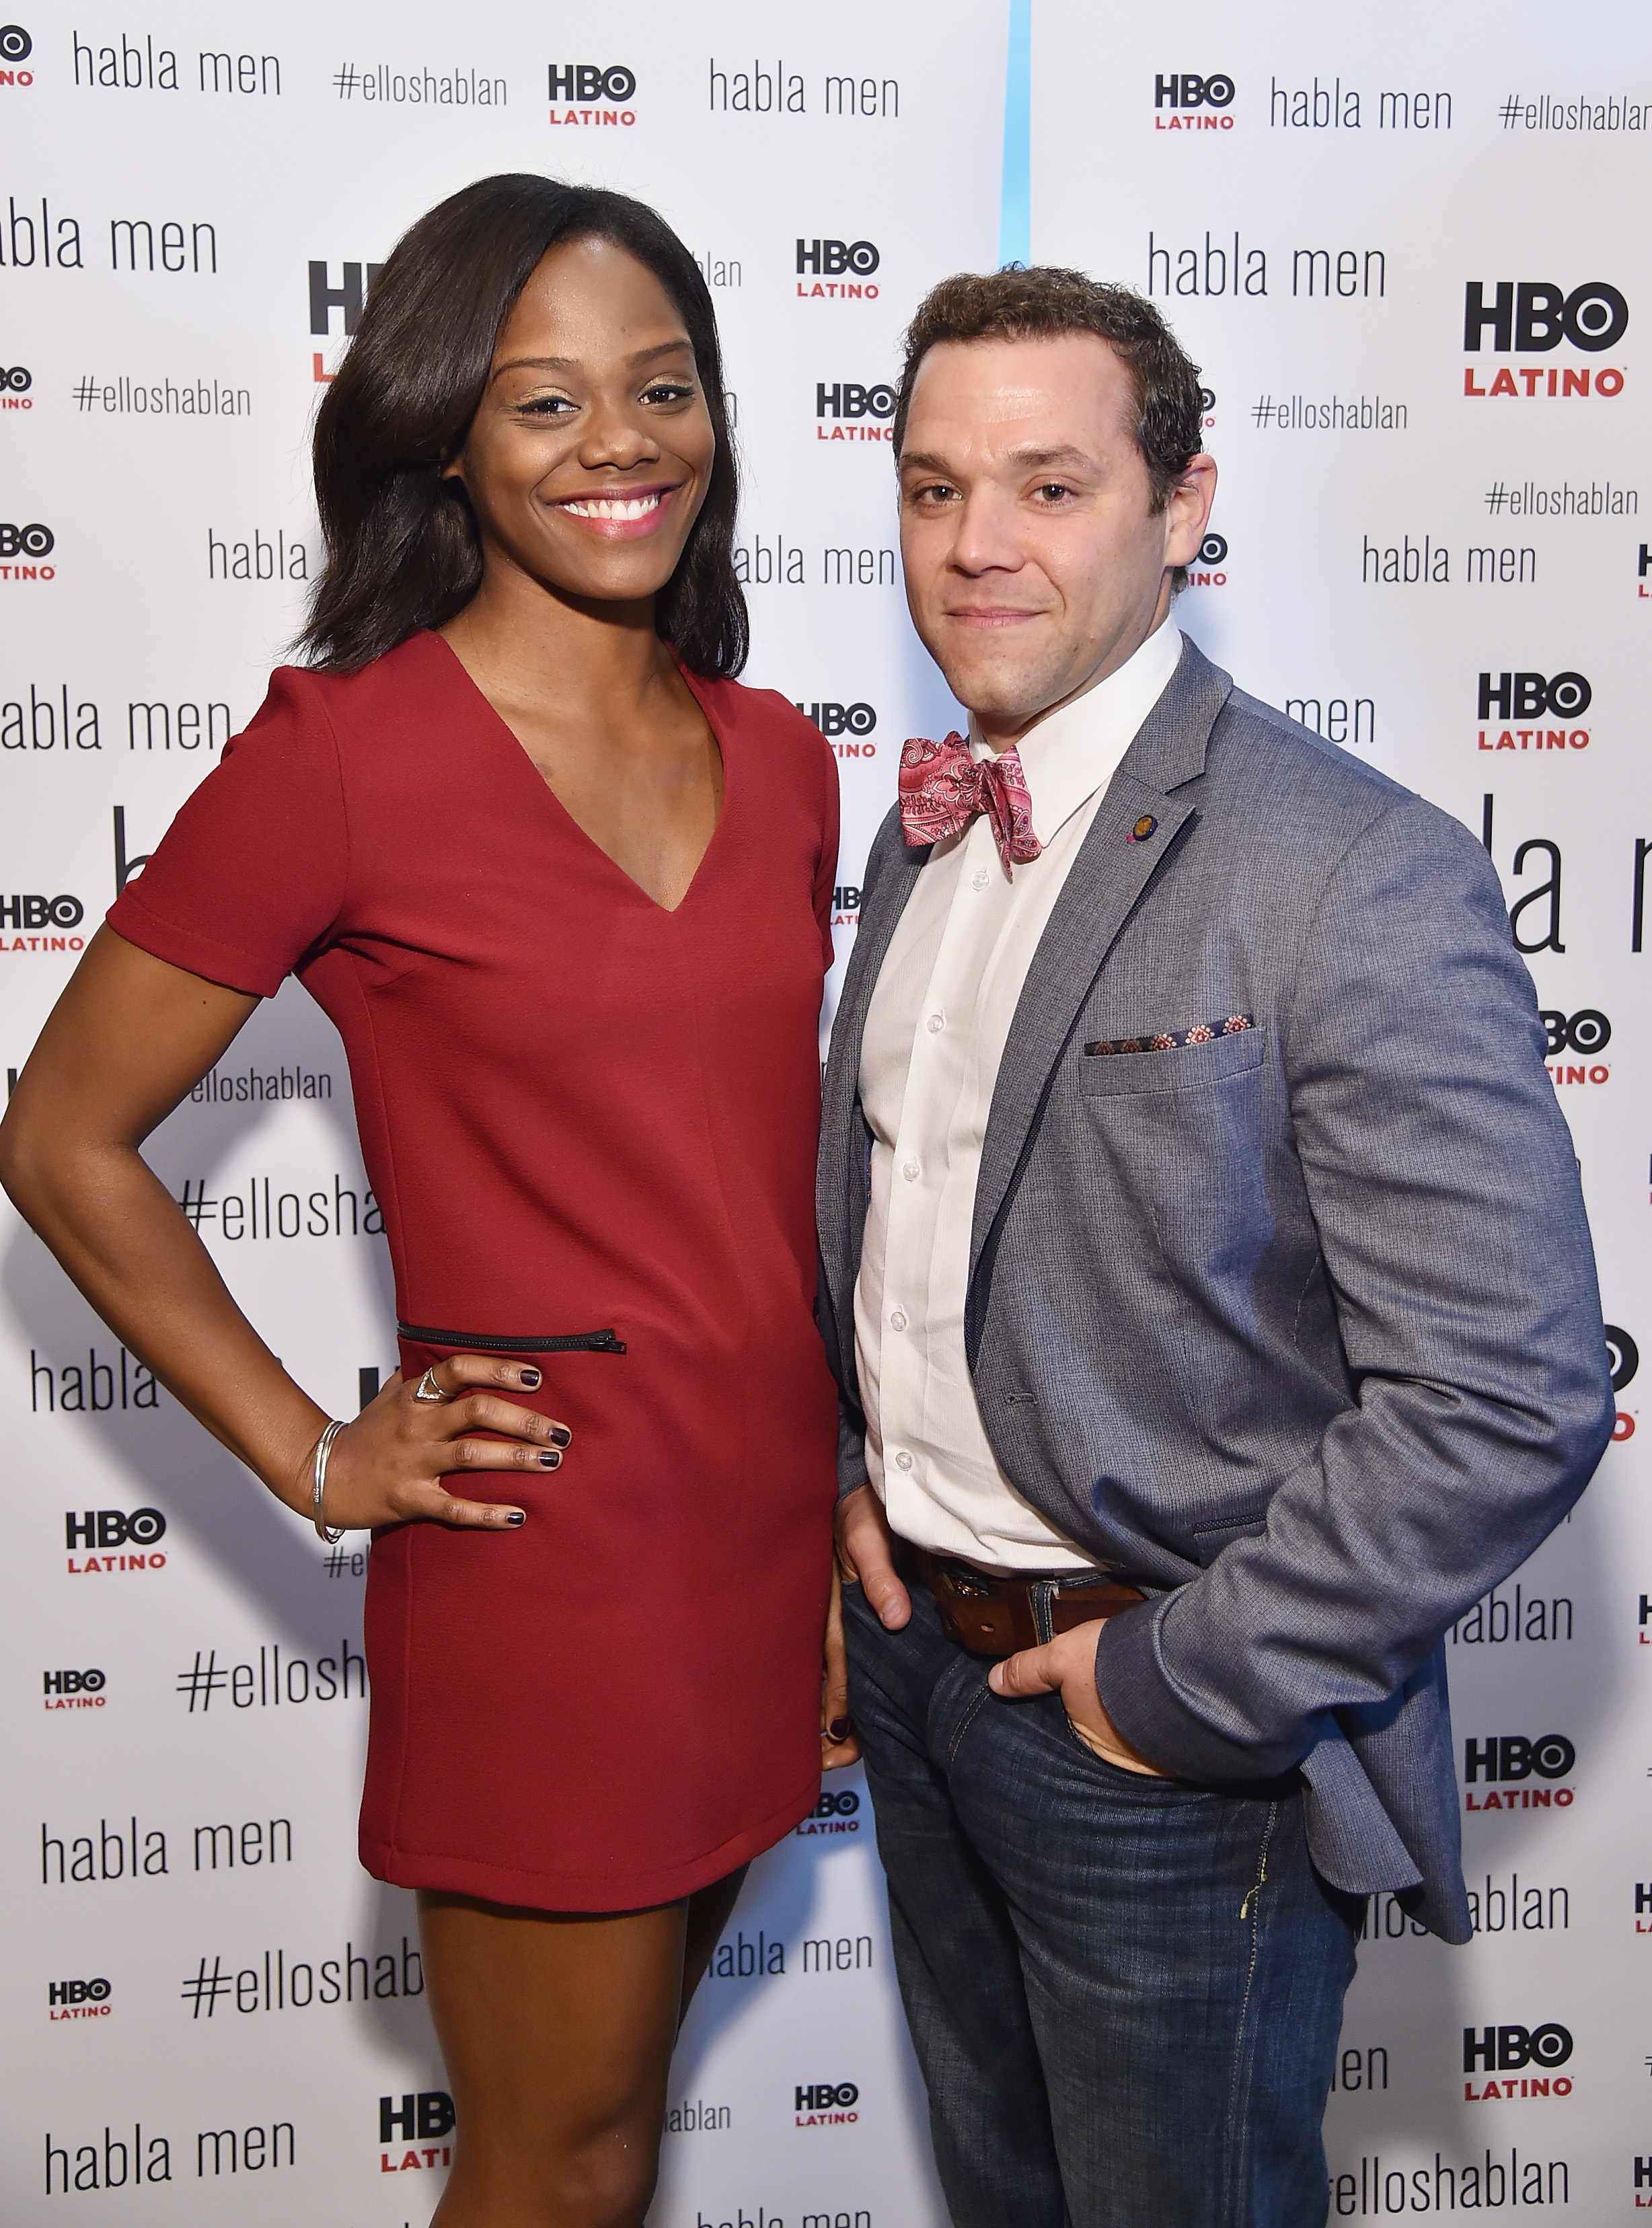 Afton Williamson (L) and Joshua Bitton attend 'Habla Men' Breakfast And Screening at HBO Theater on October 1, 2014, in New York City. (Getty Images)